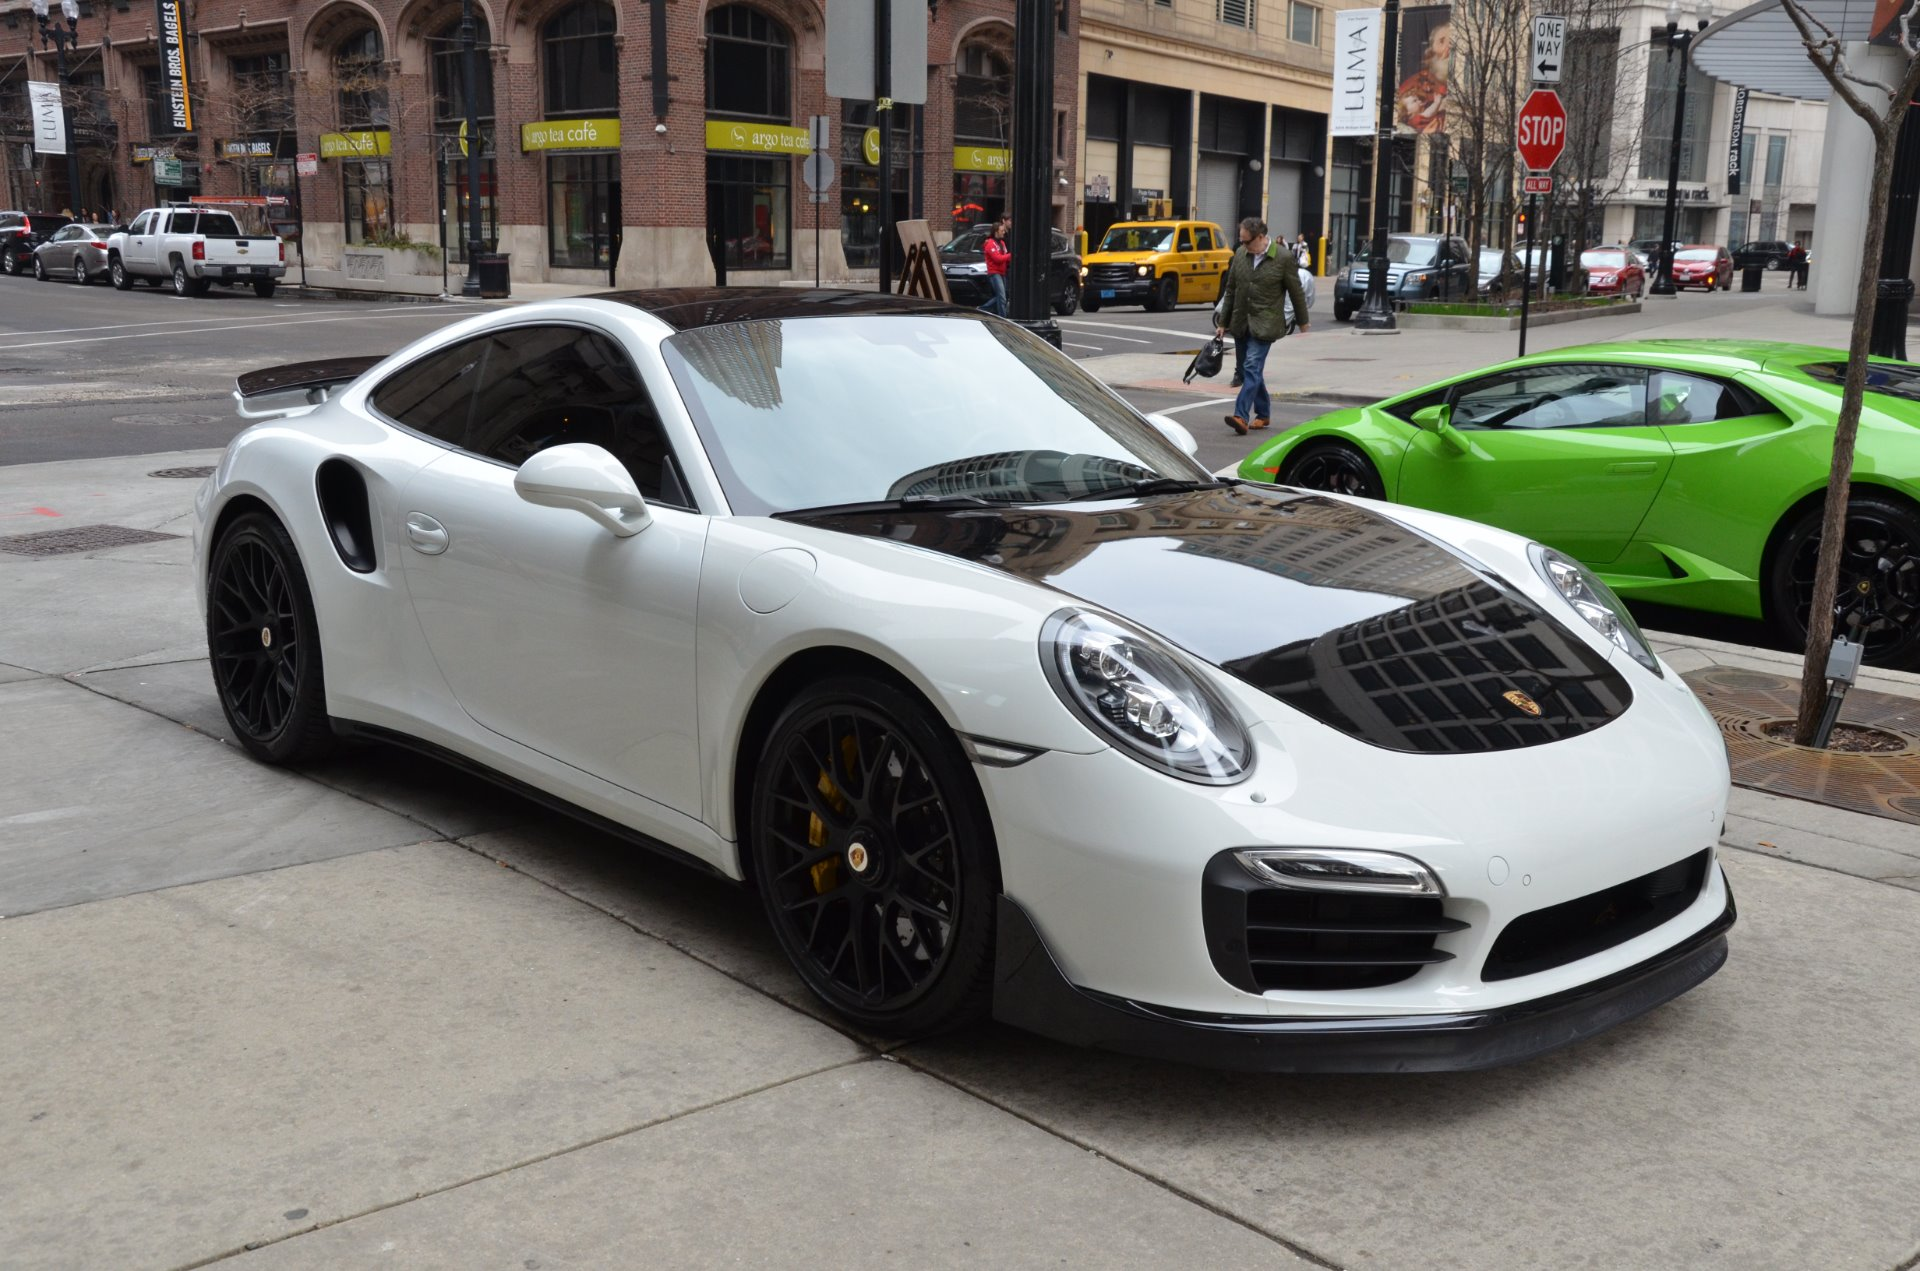 2015 porsche 911 turbo s stock 66520 for sale near chicago il il porsche dealer. Black Bedroom Furniture Sets. Home Design Ideas